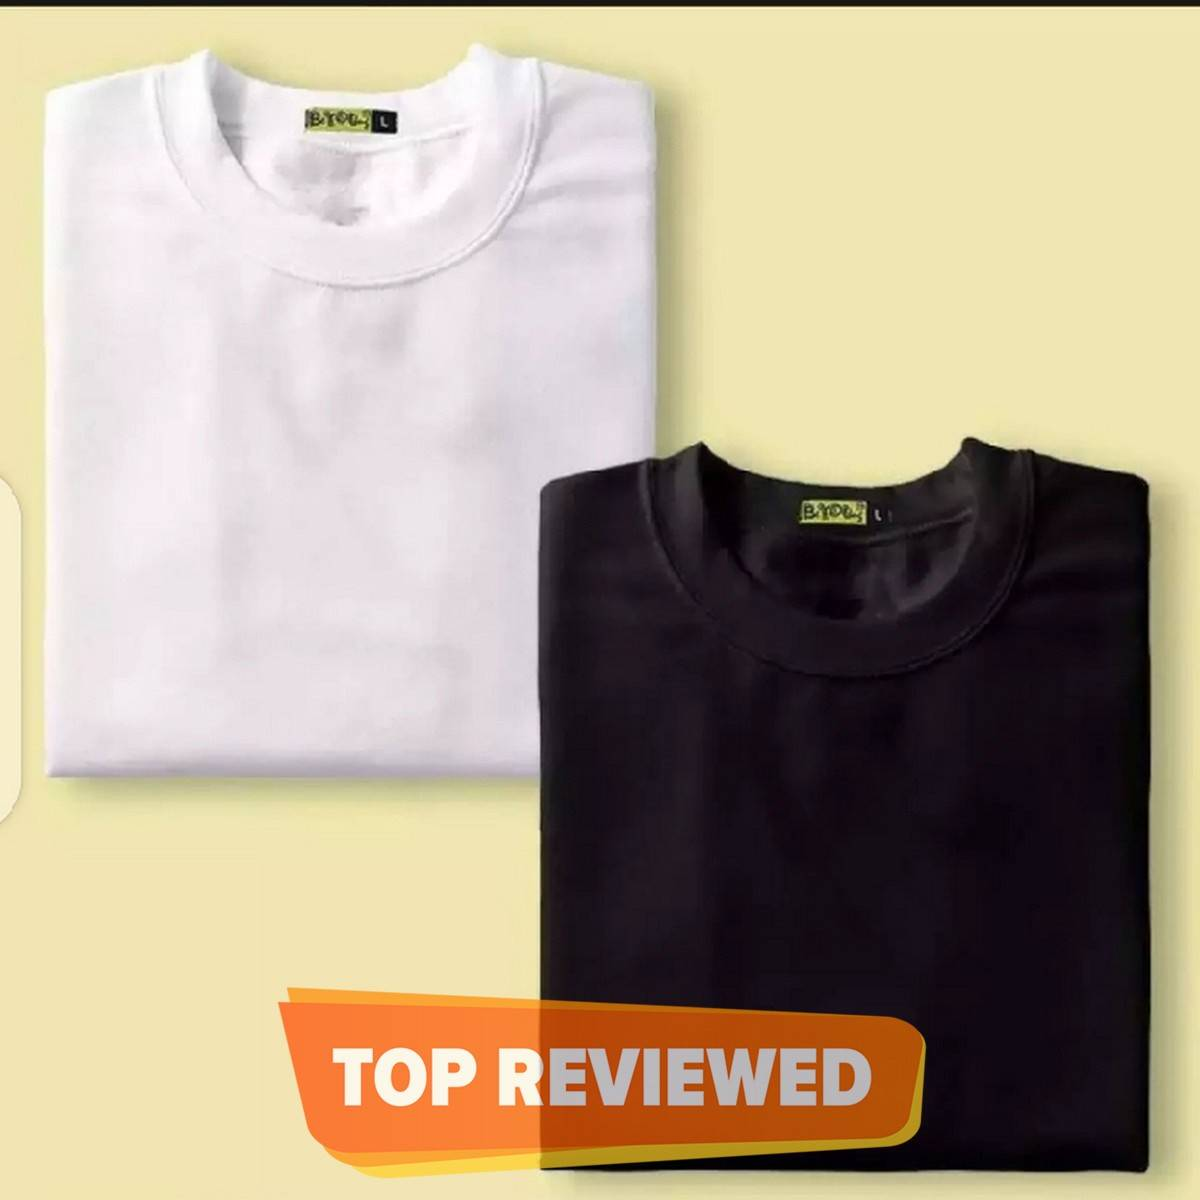 The Vintage Clothing Pack ofa 2 plain black and white half sleeves T shirt